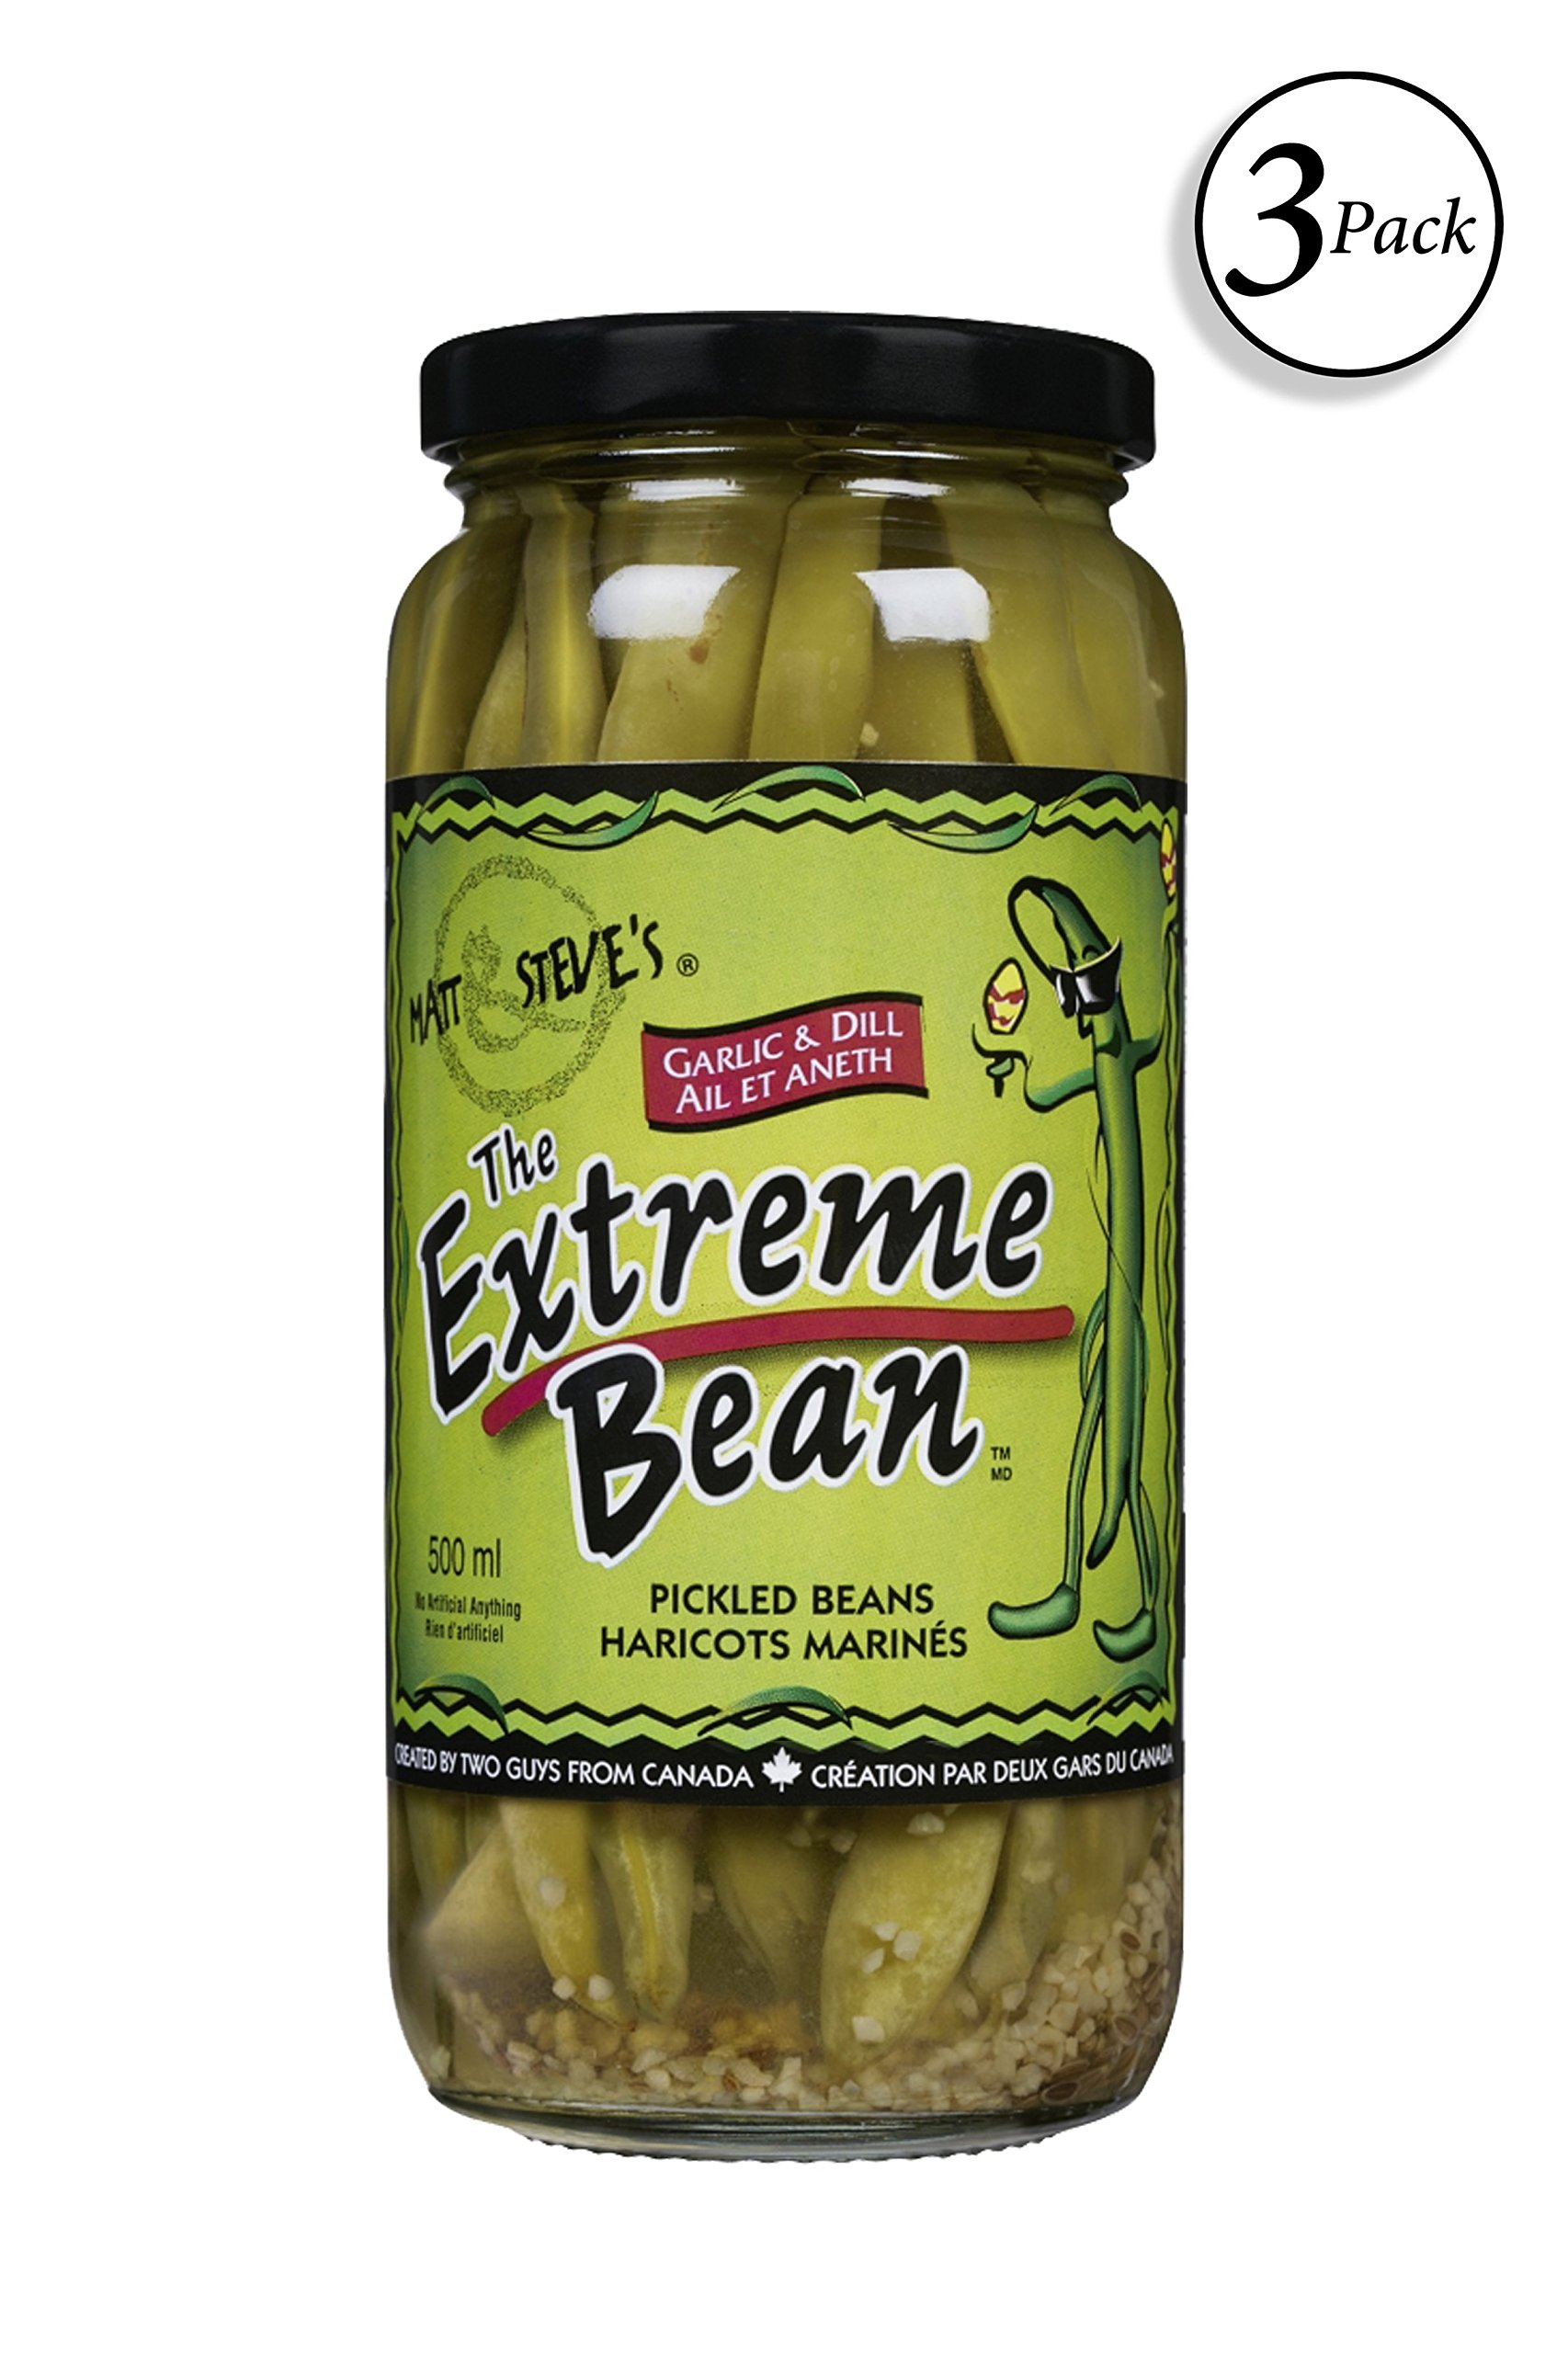 The Extreme Bean - Garlic & Dill, Pickled Green Beans. 16 oz (3 pack)